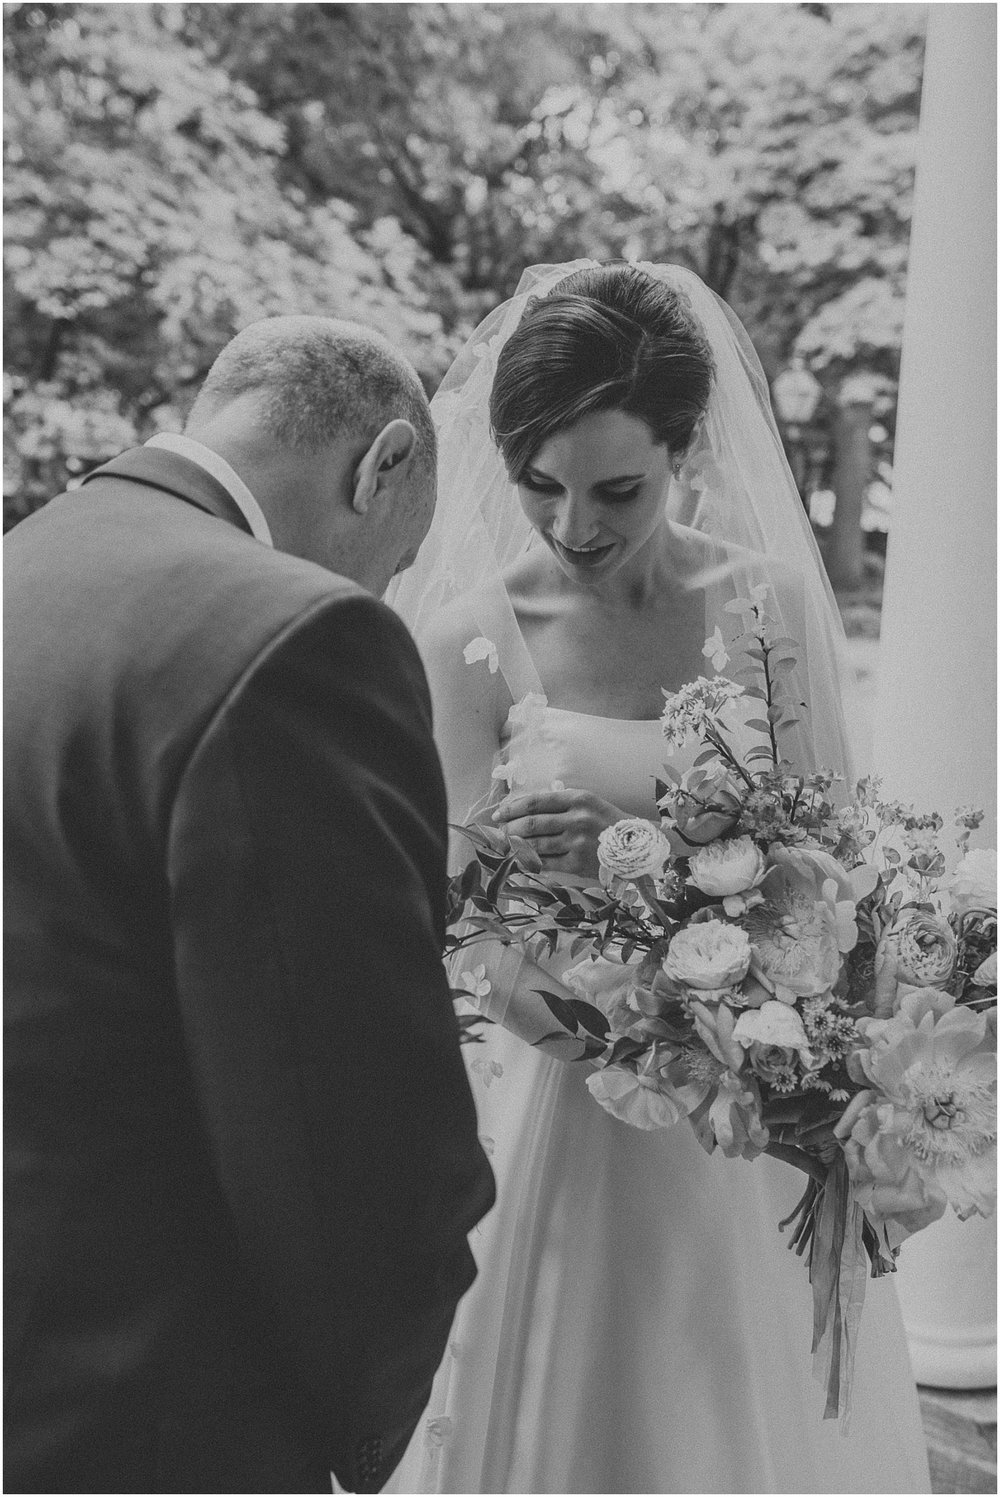 Bride anxiously waiting with her father before wedding ceremony at Arch Street Meeting House in Philadelphia Pennsylvania